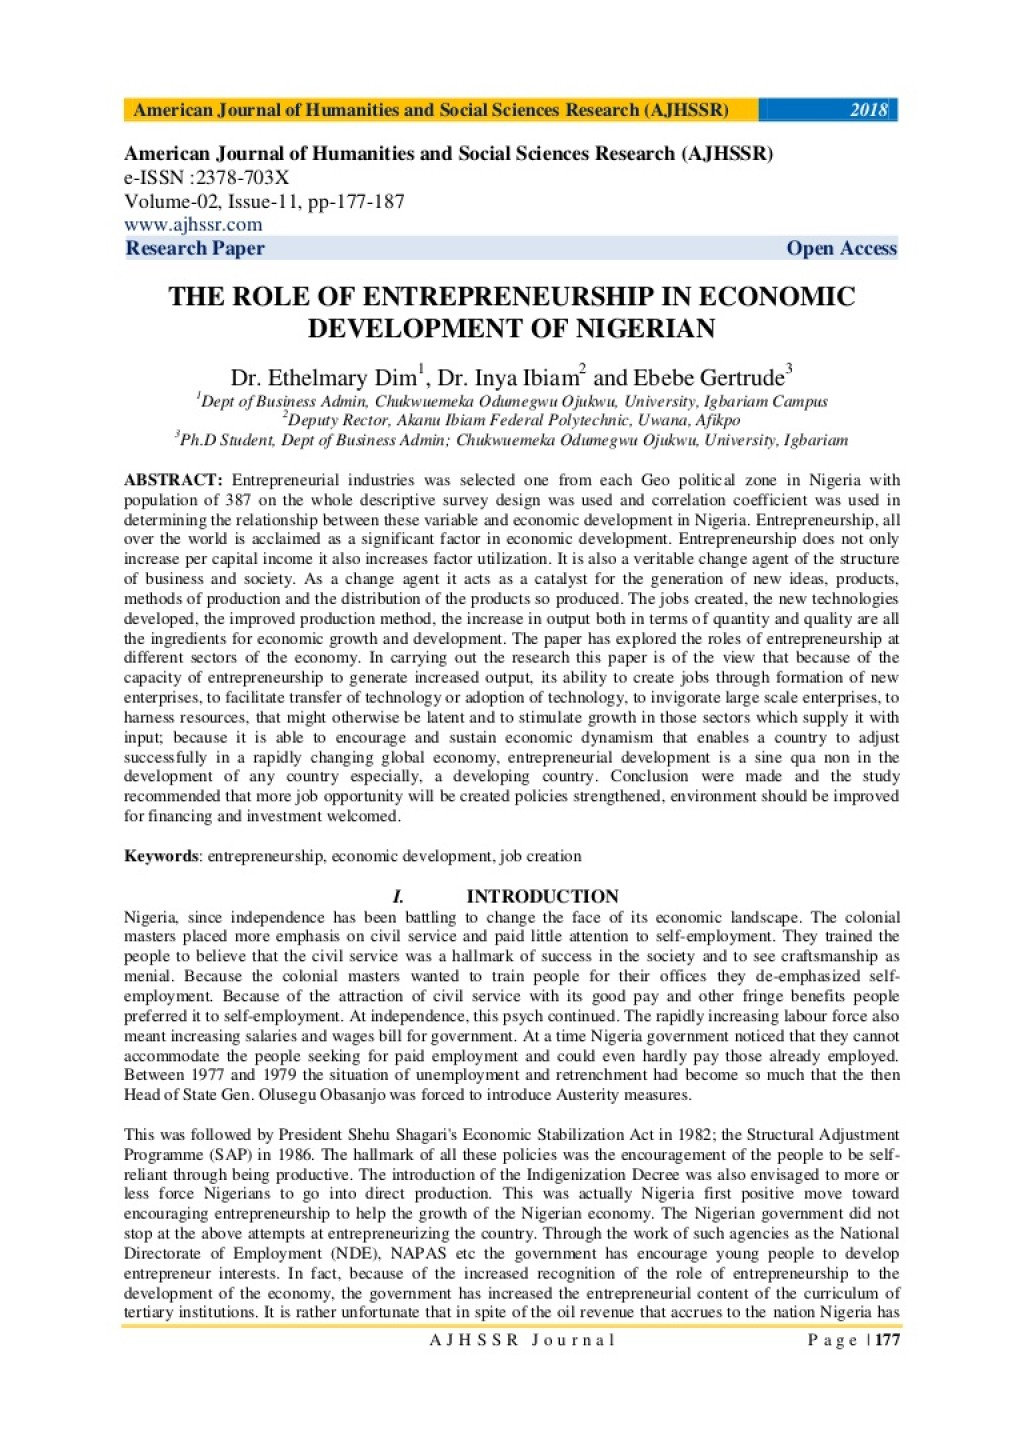 005 Research Paper V18211177187 Thumbnail Economic Development Unusual Papers Growth Local Large